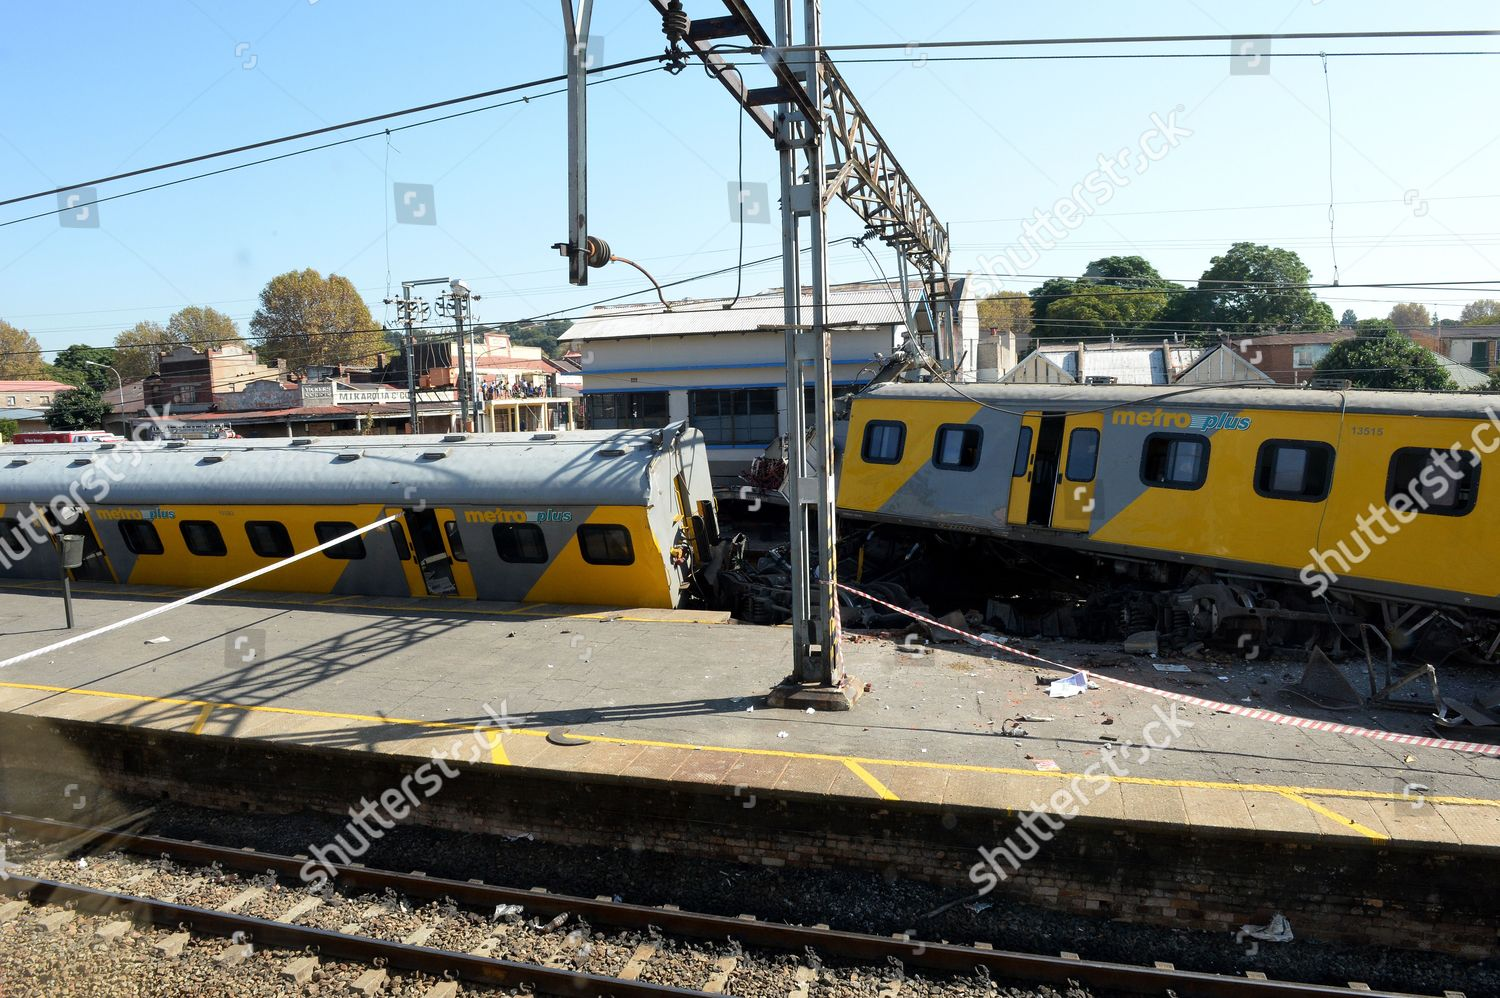 aftermath train crash Editorial Stock Photo - Stock Image